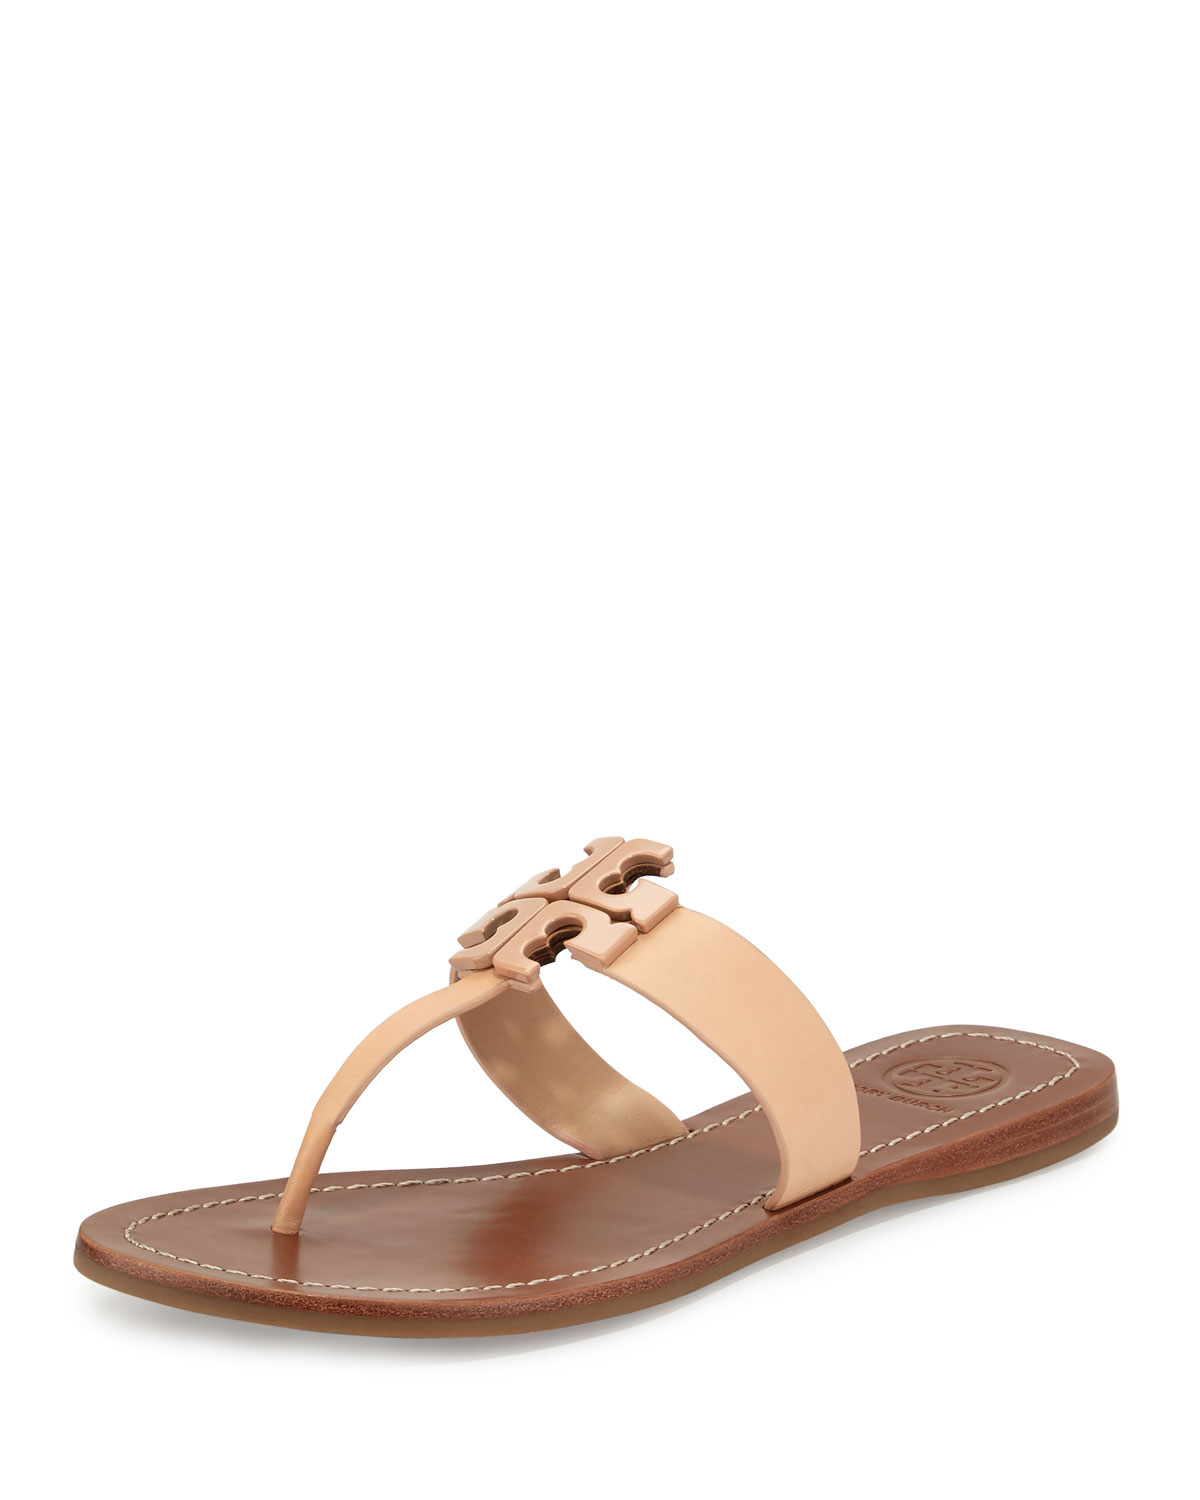 e89861a14ac073 Tory BurchMoore 2 Leather Thong Sandals. Free Shipping